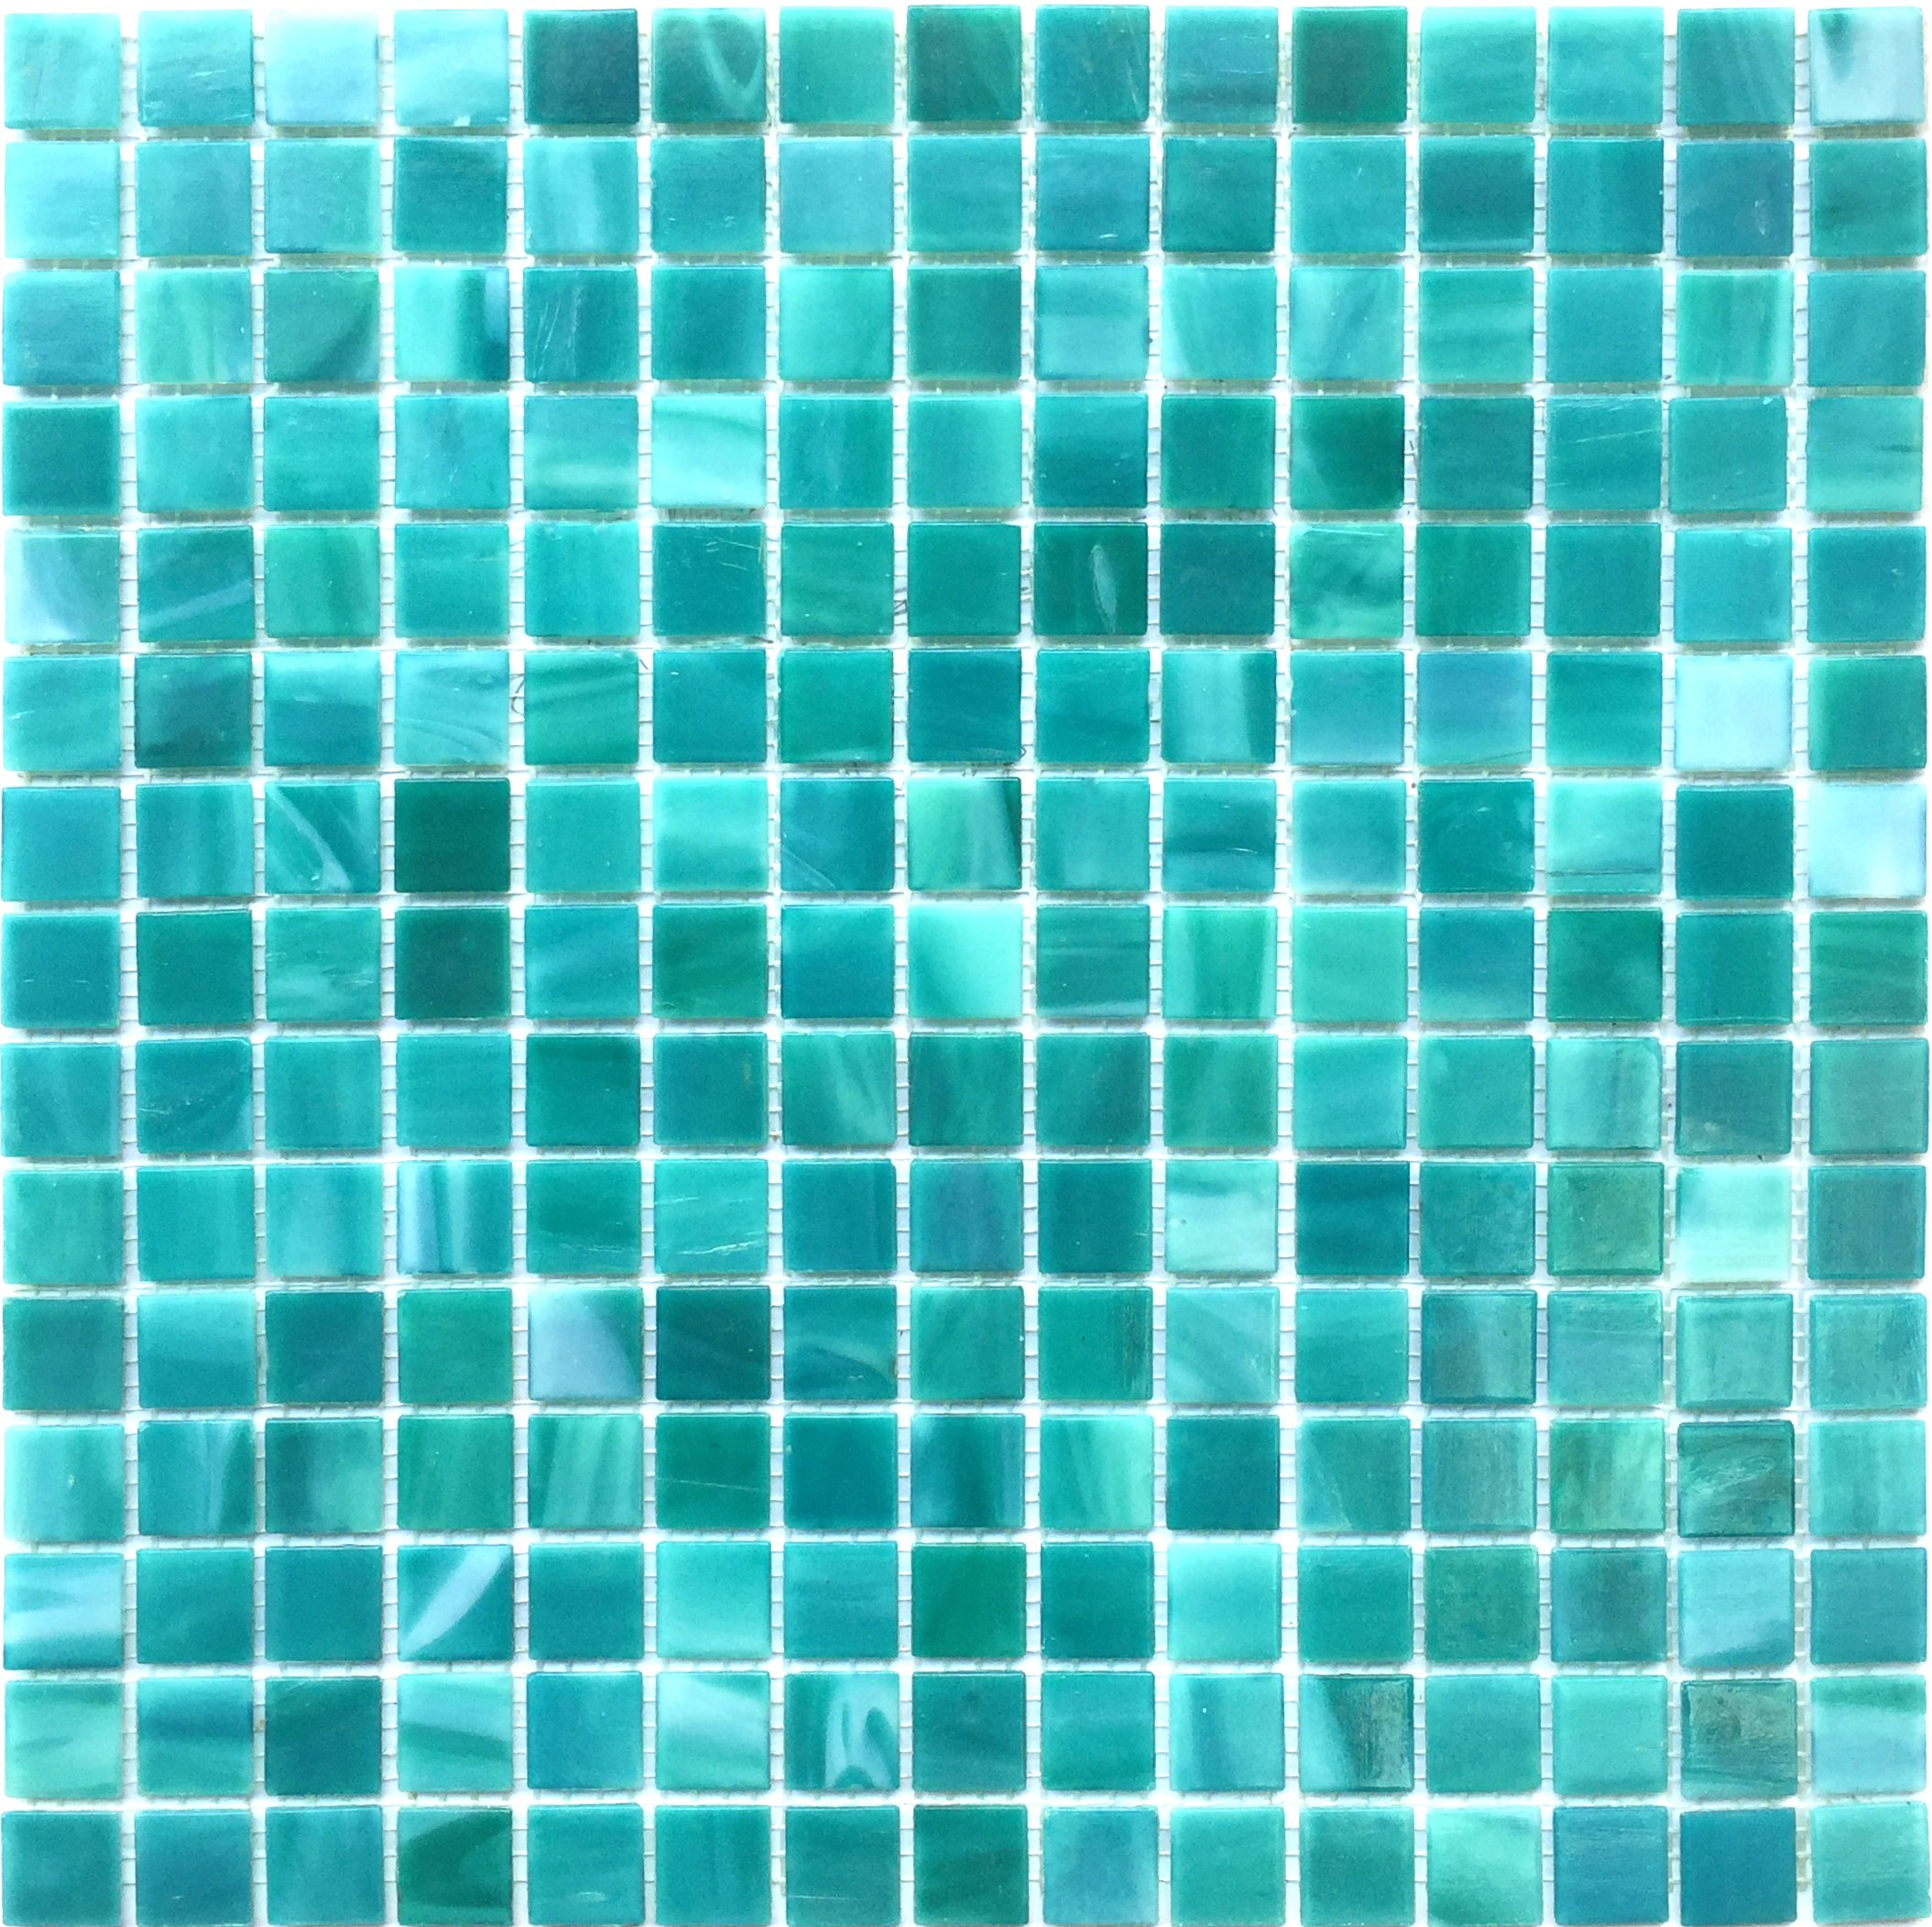 Hometile Mosaic Glass Mosaic Tile/backsplash Tile for Kitchen/Sticker Tile/Bathroom Tile/Kitchen Tiles for Wall,Mosaic Tiles (10sheet, Blue)